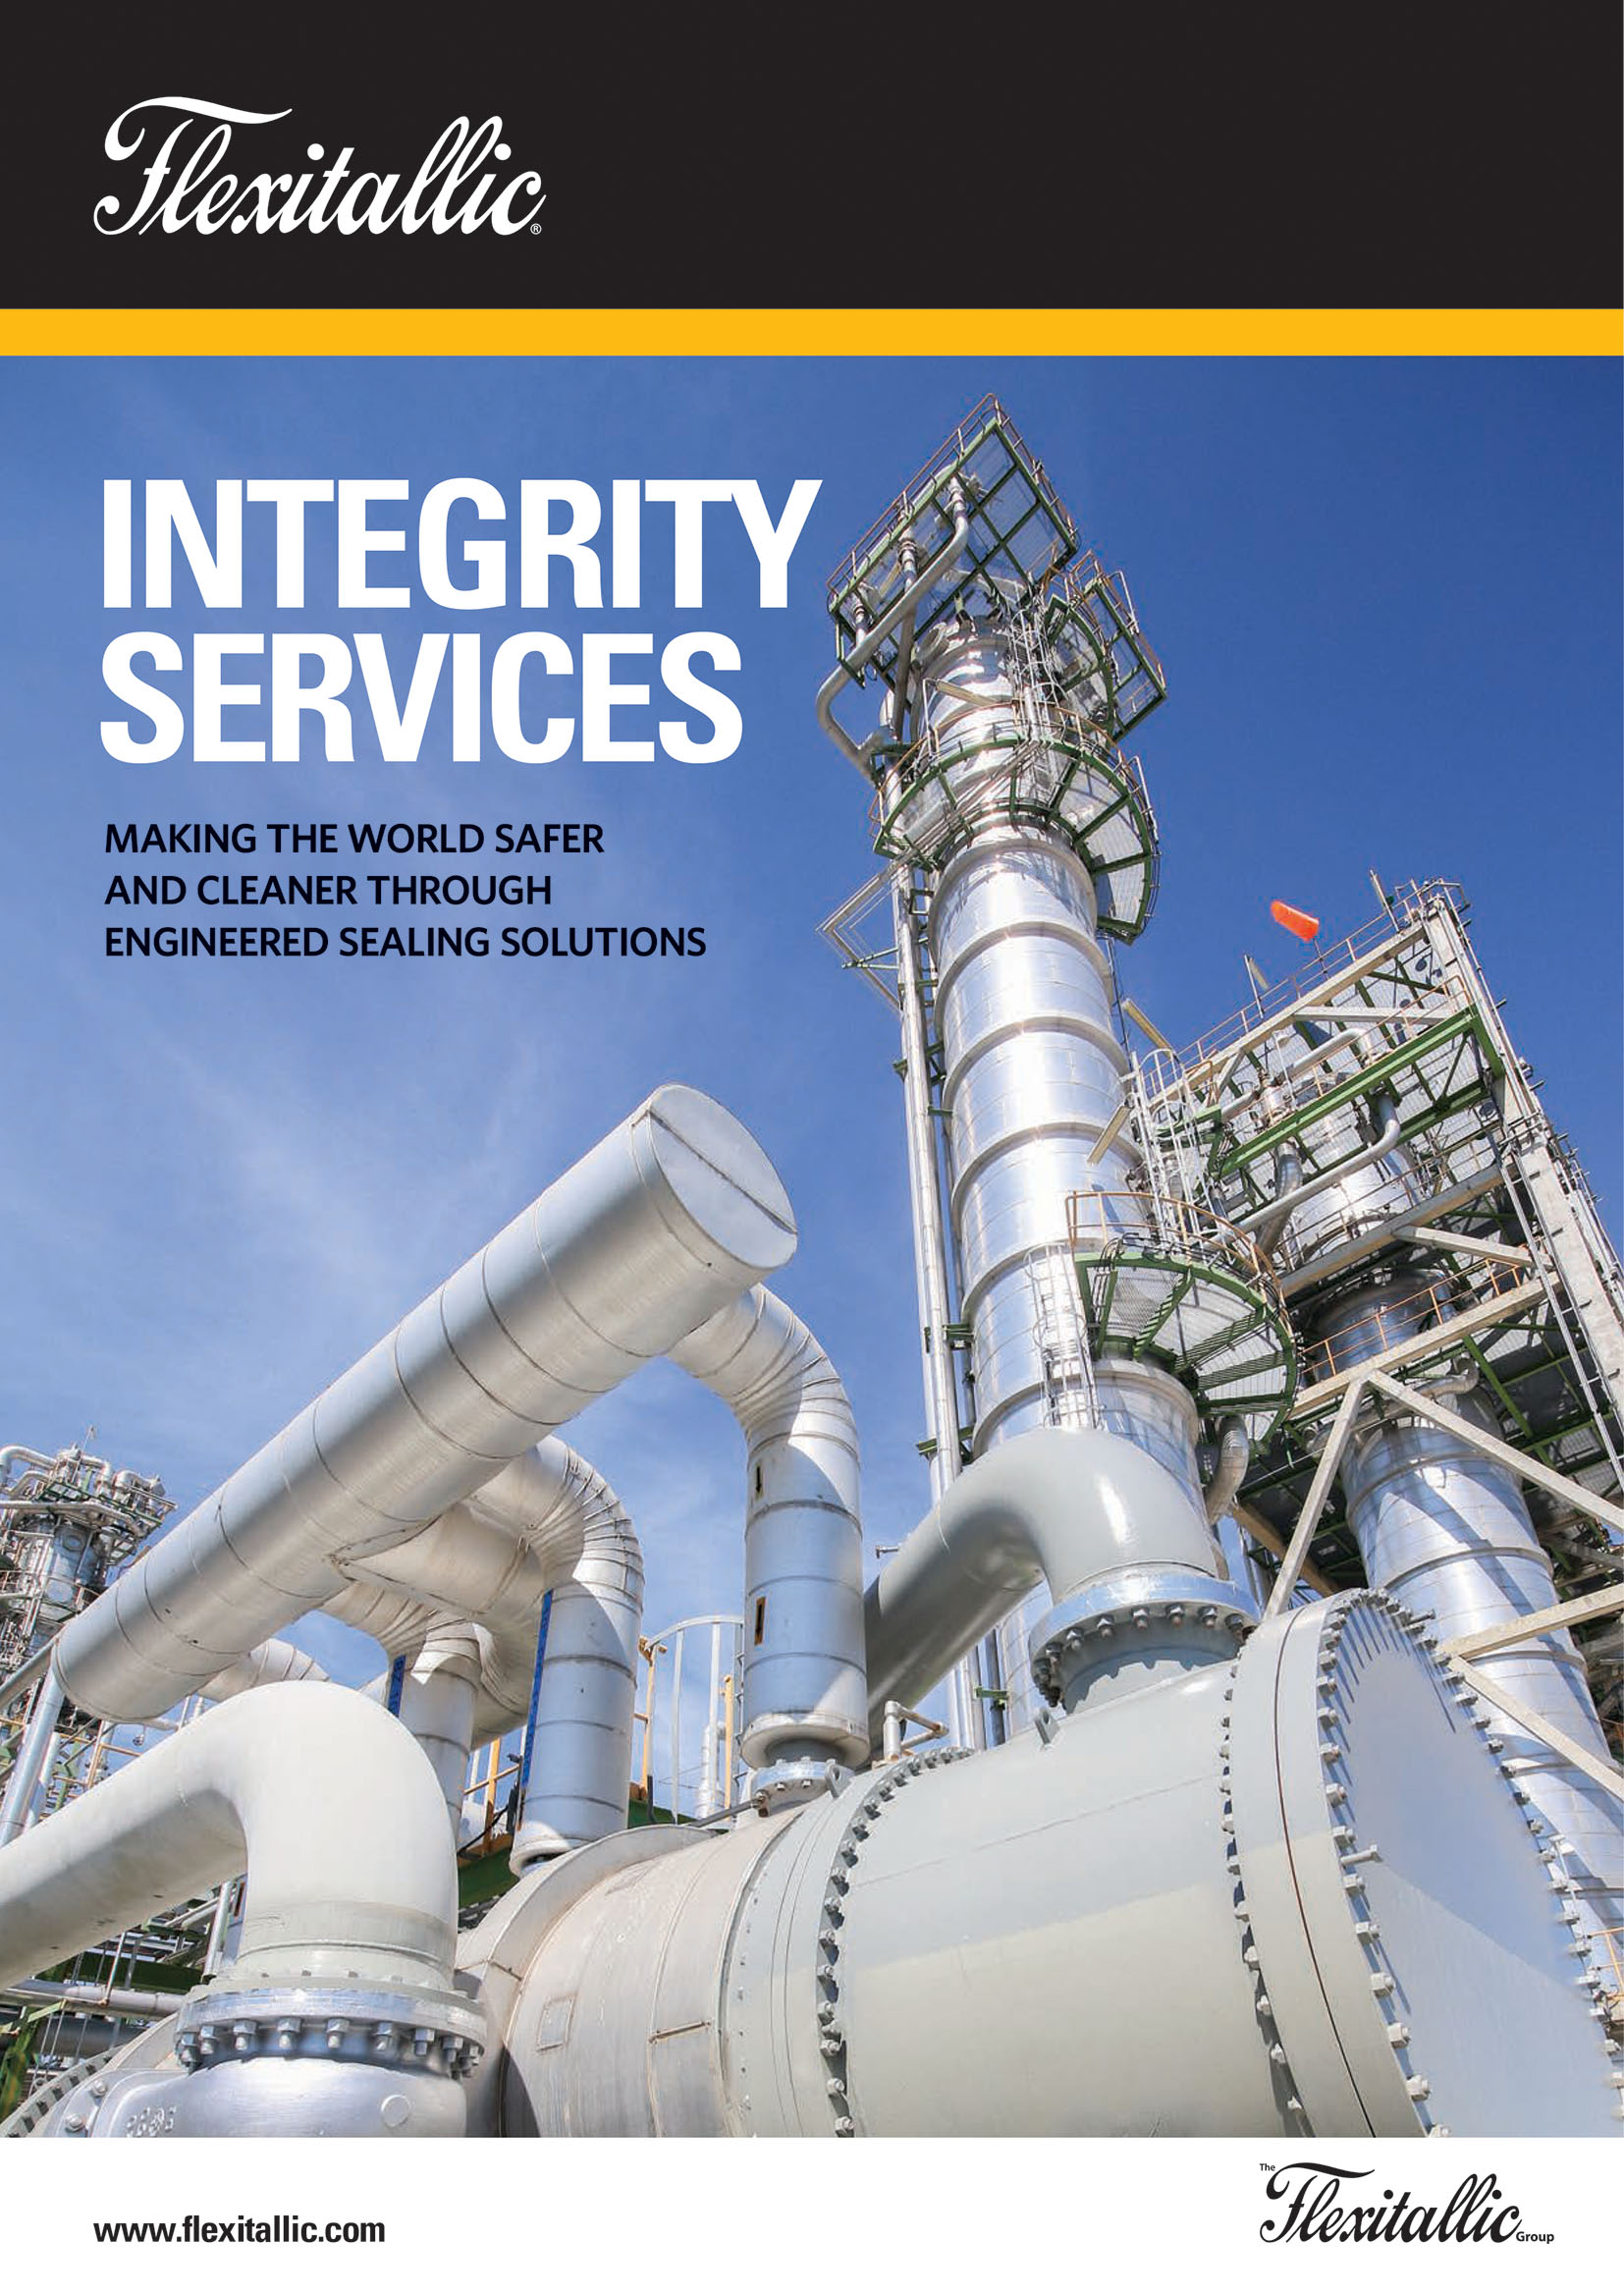 Flexitallic Integrity Services brochure